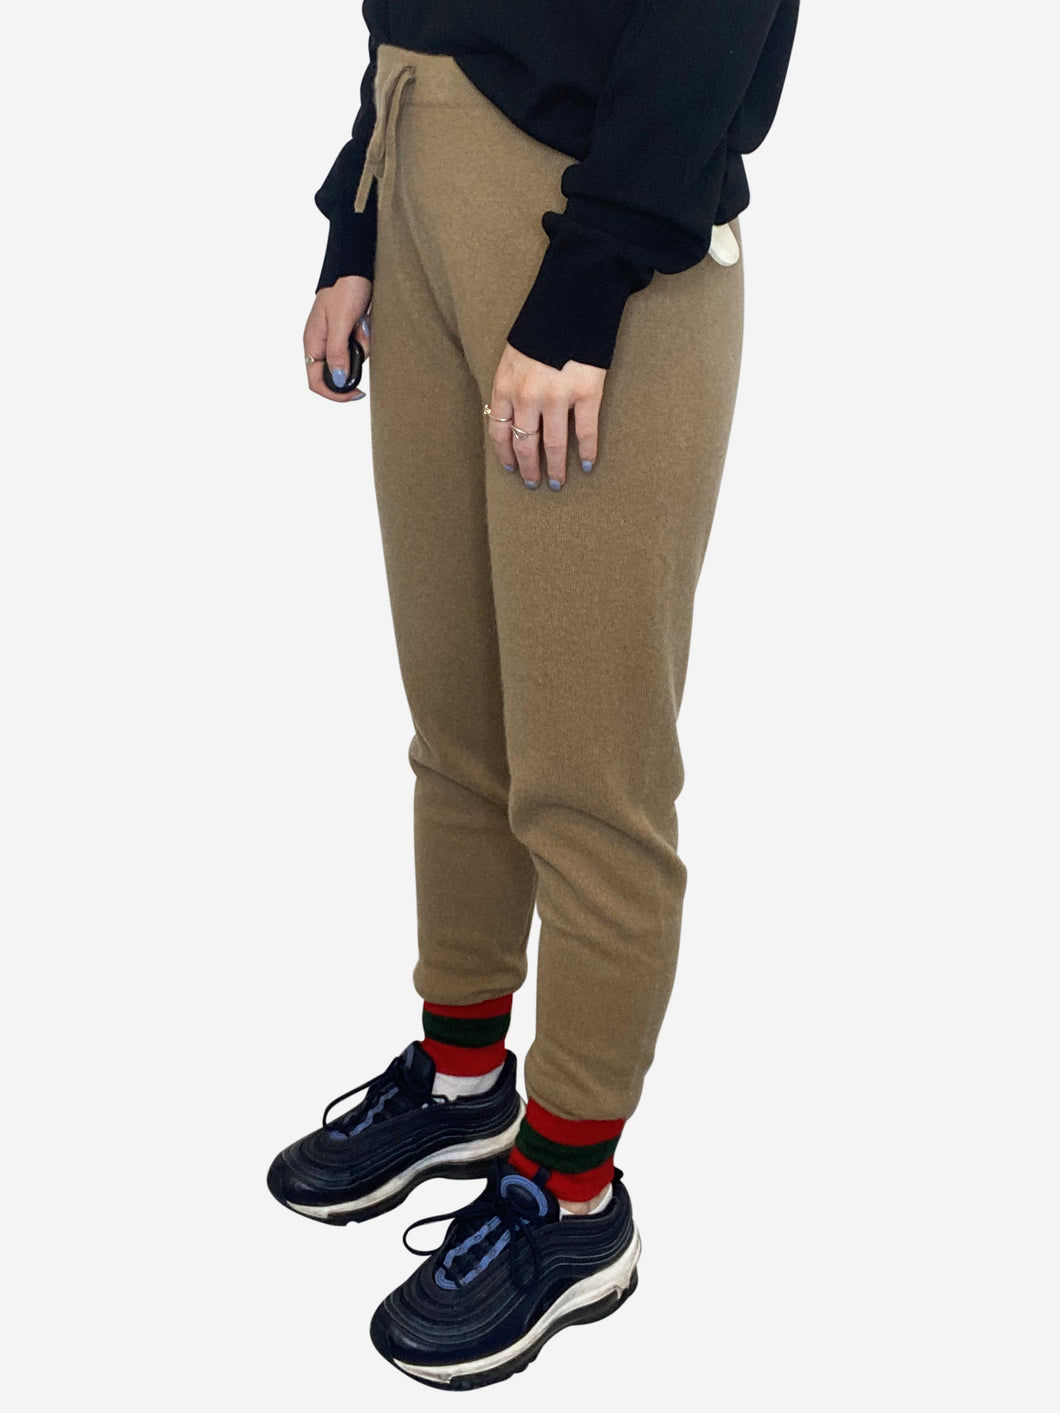 Beige cashmere trousers with red and green striped cuff - size S